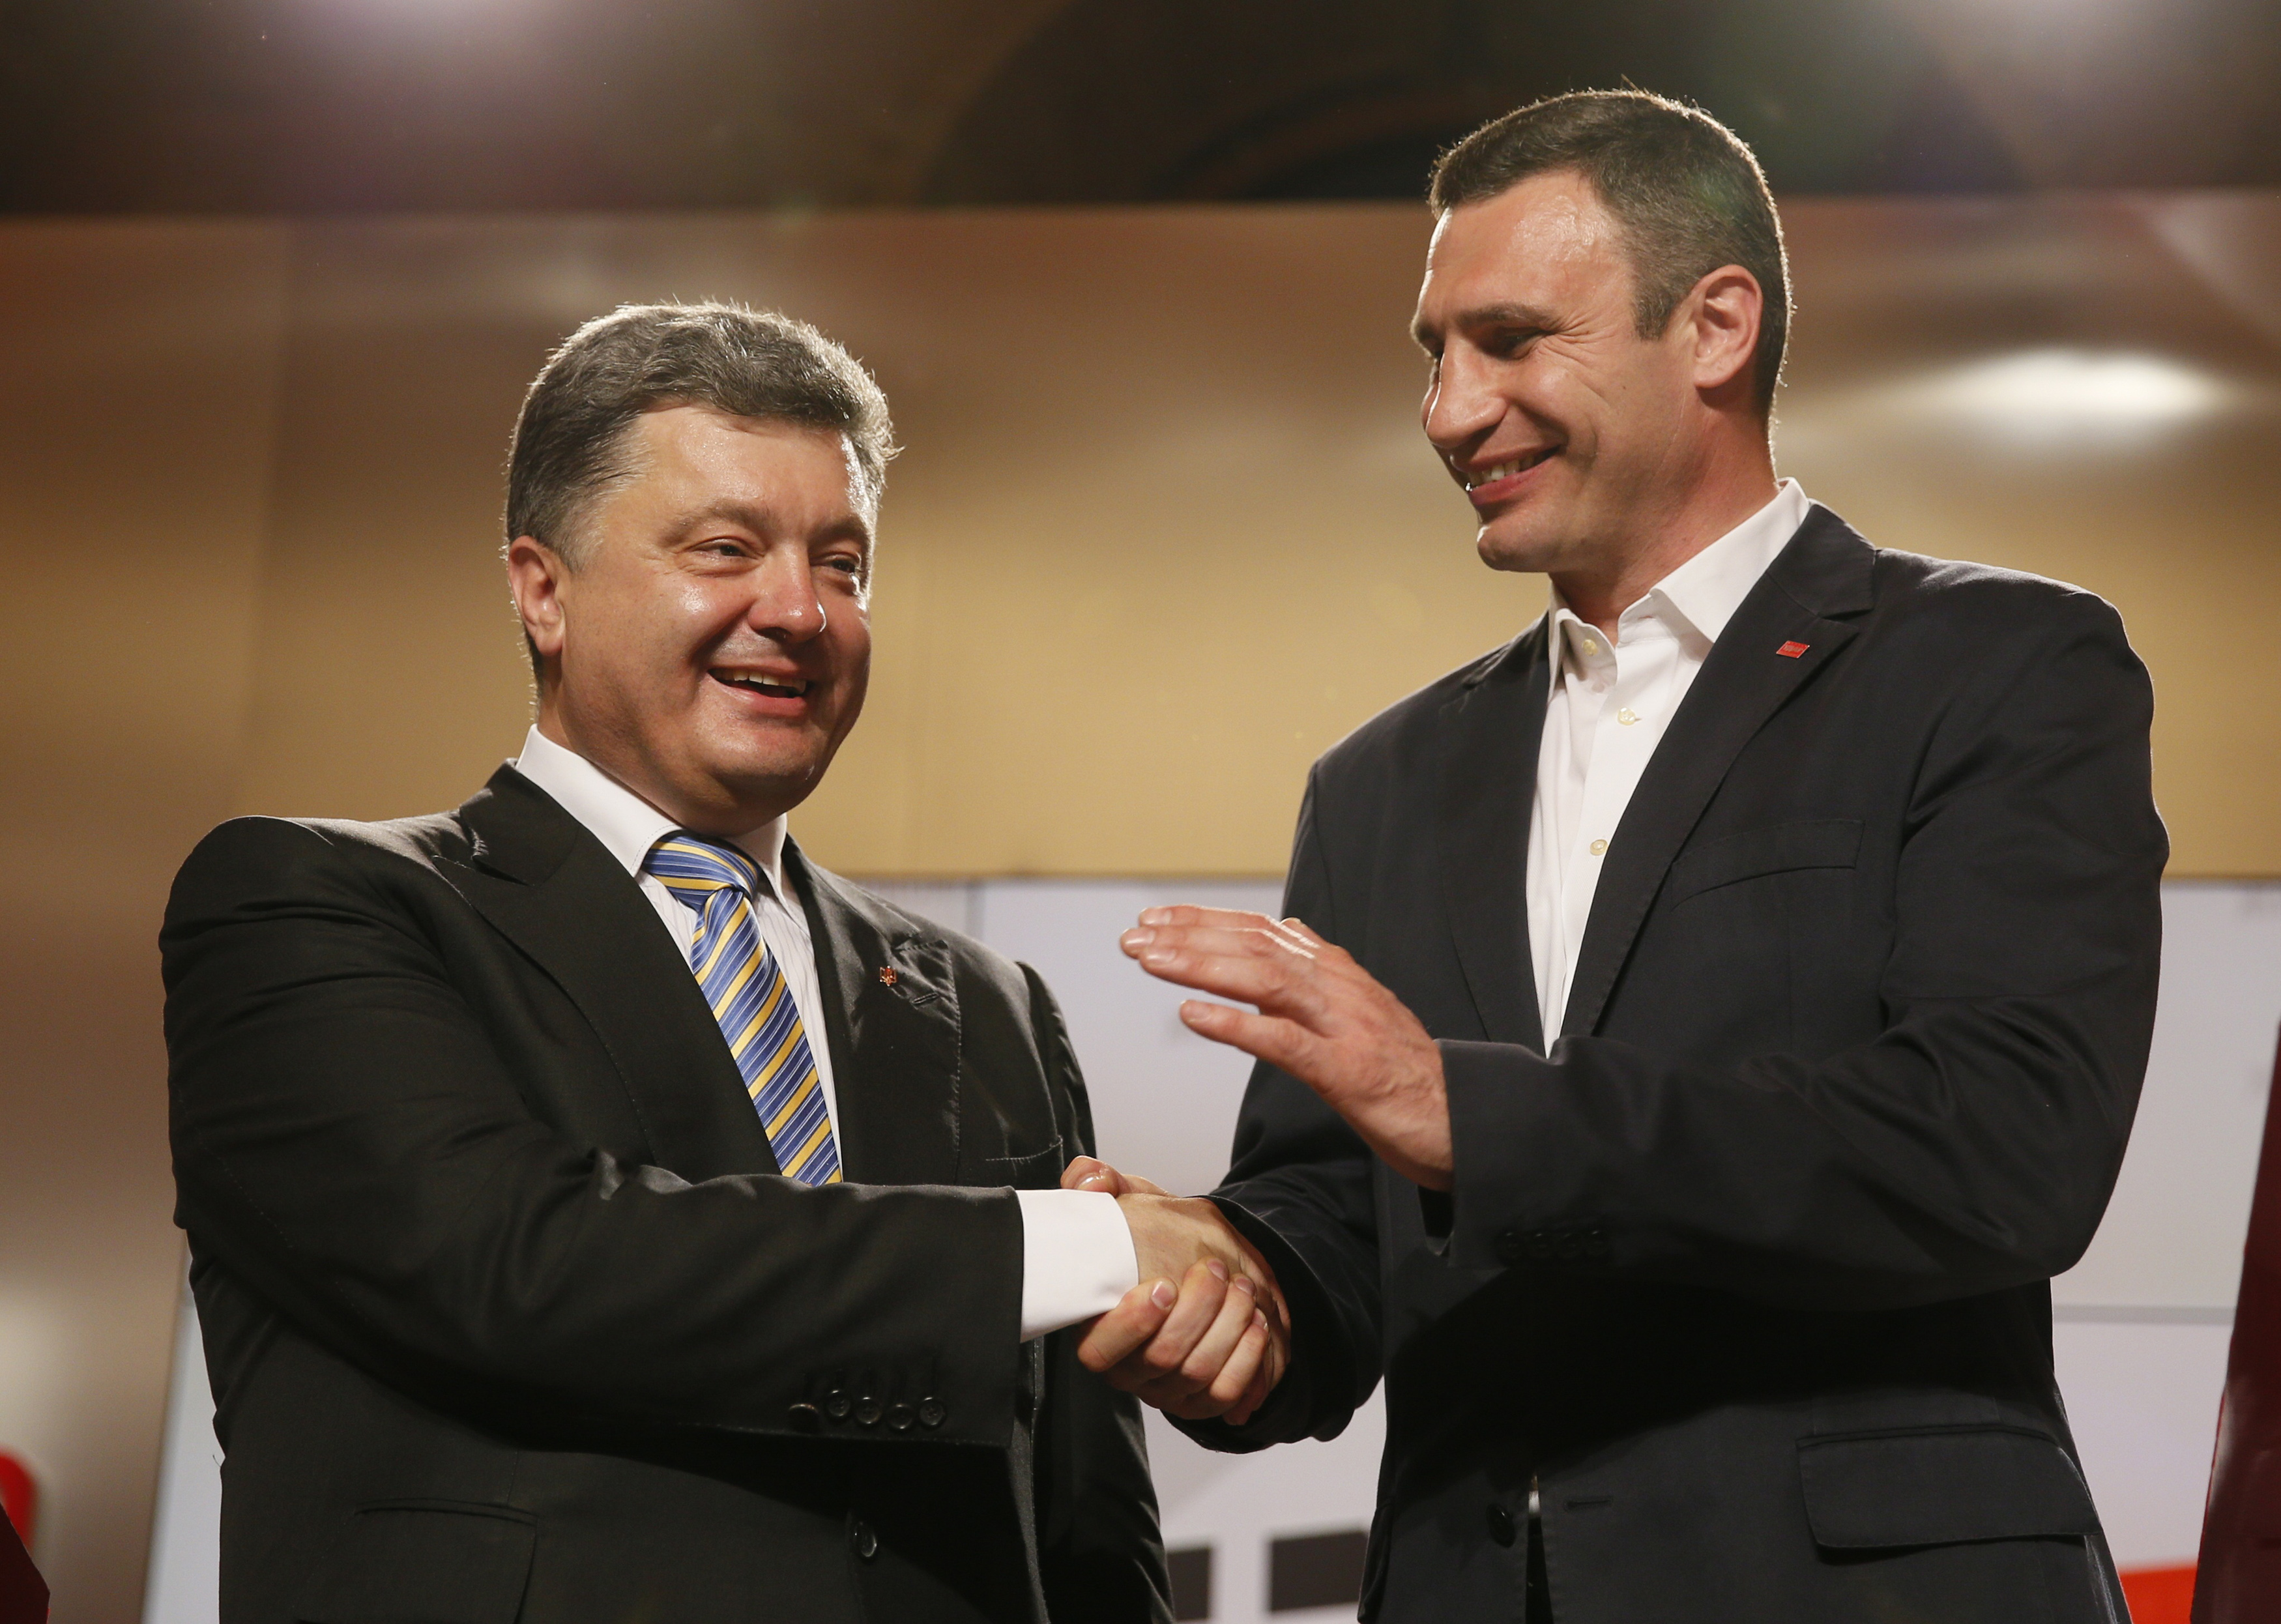 Presidential candidate Petro Poroshenko (left) and Kyiv mayoral candidate Vitali Klitschko celebrate after claiming victory in the May 25 elections. Klitschko withdrew from the presidential race and allied his UDAR party (the Ukrainian Democratic Alliance for Reform) with Poroshenko's candidacy. Both men are seen as centrists. REUTERS/Gleb Garanich